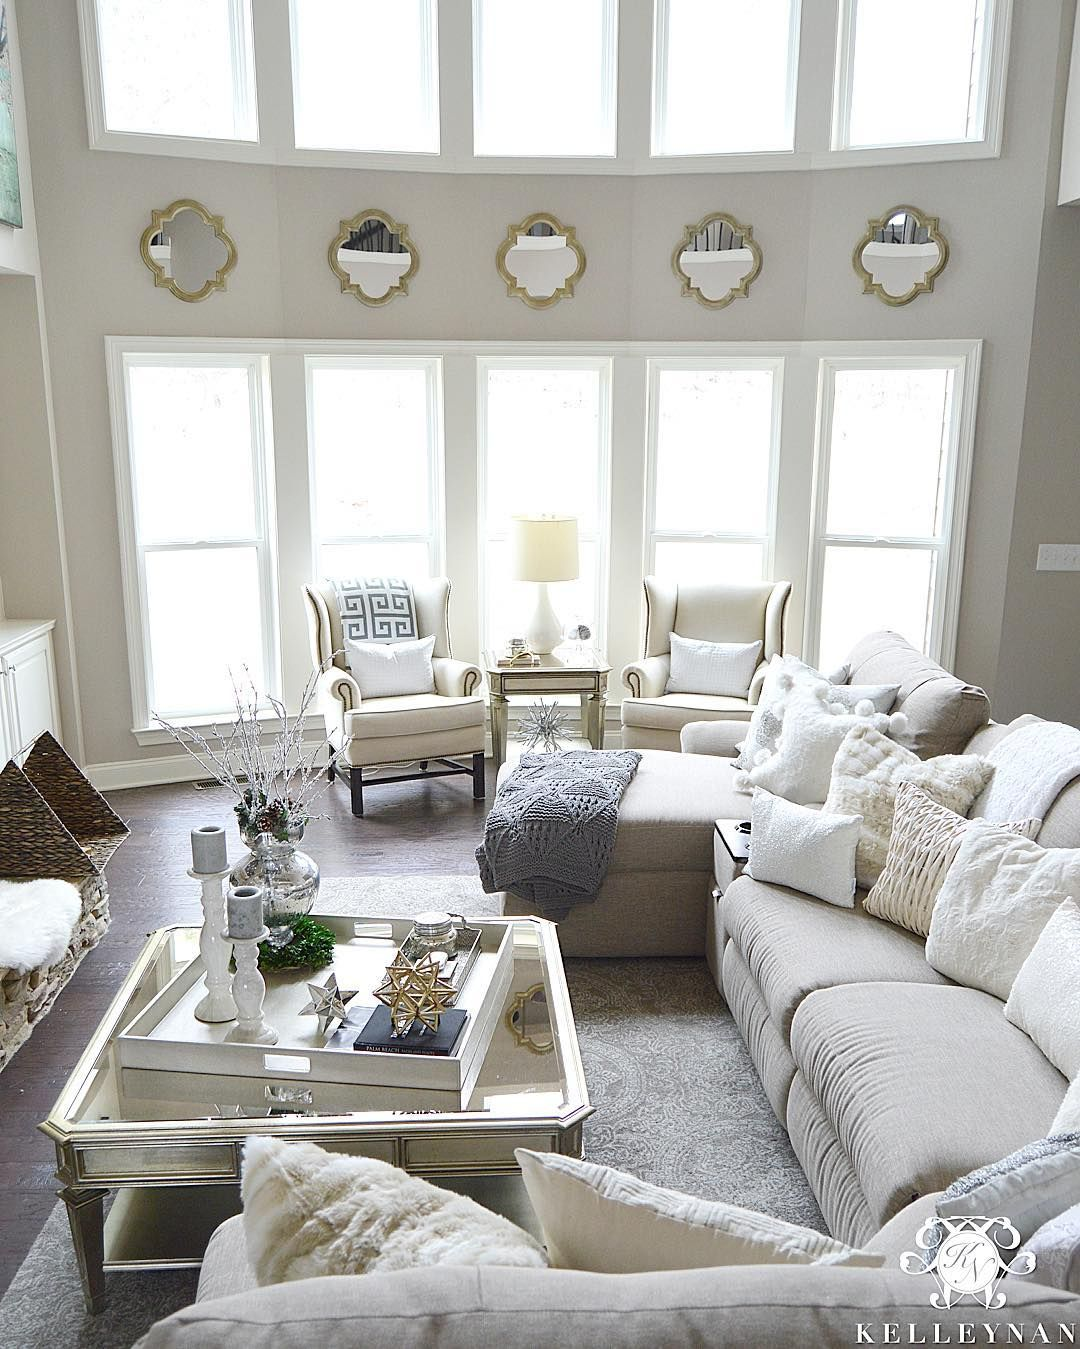 14 Living Room Window Designs Decorating Ideas: Kelley Nan (@kelleynan) • Instagram Photos White Gray And